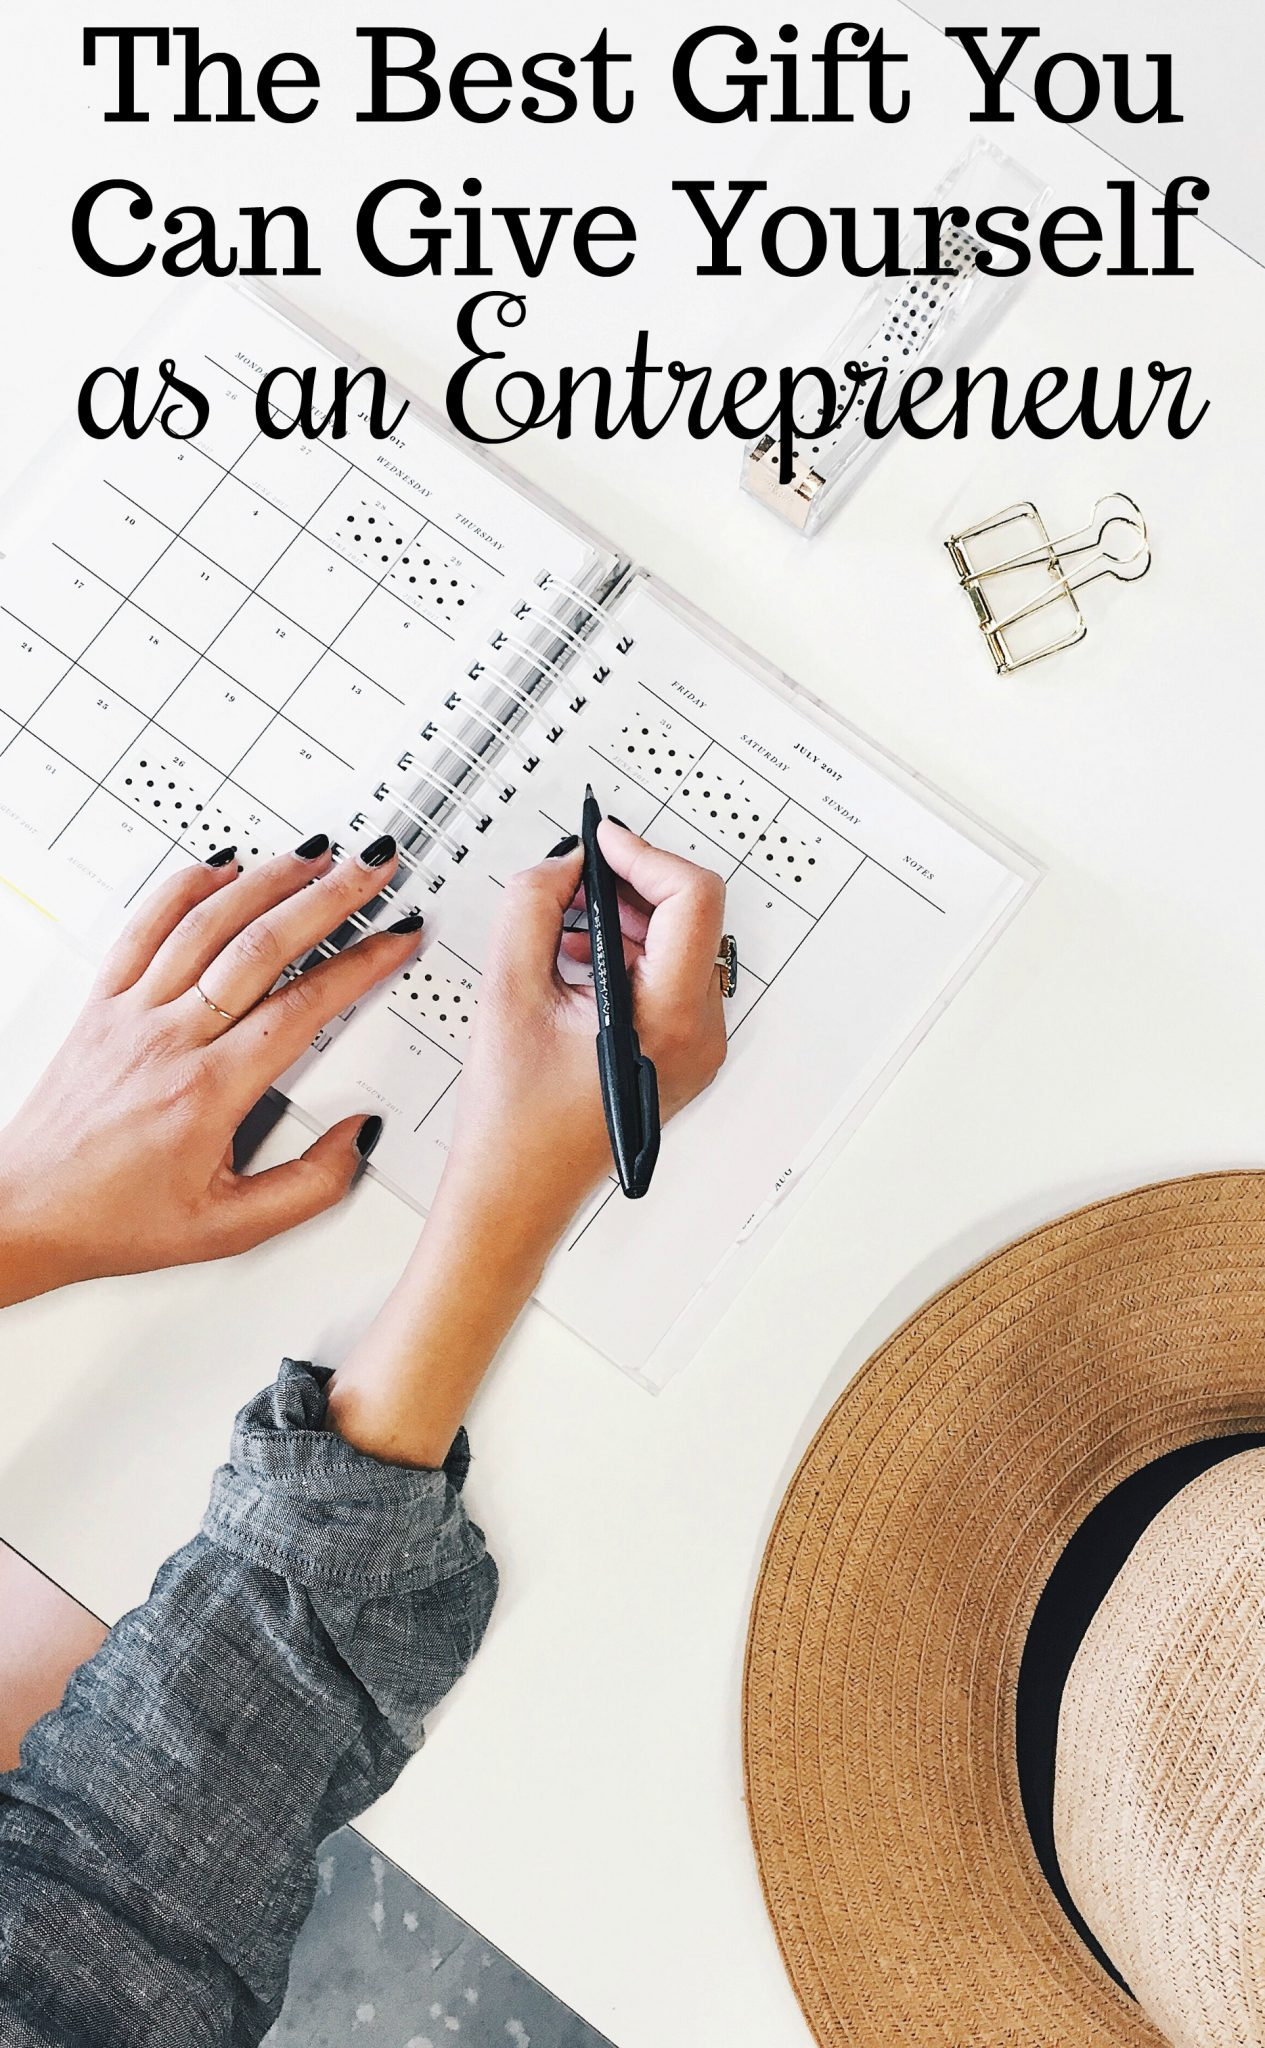 The Best Gift You Can Give Yourself as an Entrepreneur from SheOwnsIt.com >> small business tips, solopreneur, self-care, freelancing, business tips, planning, work at home